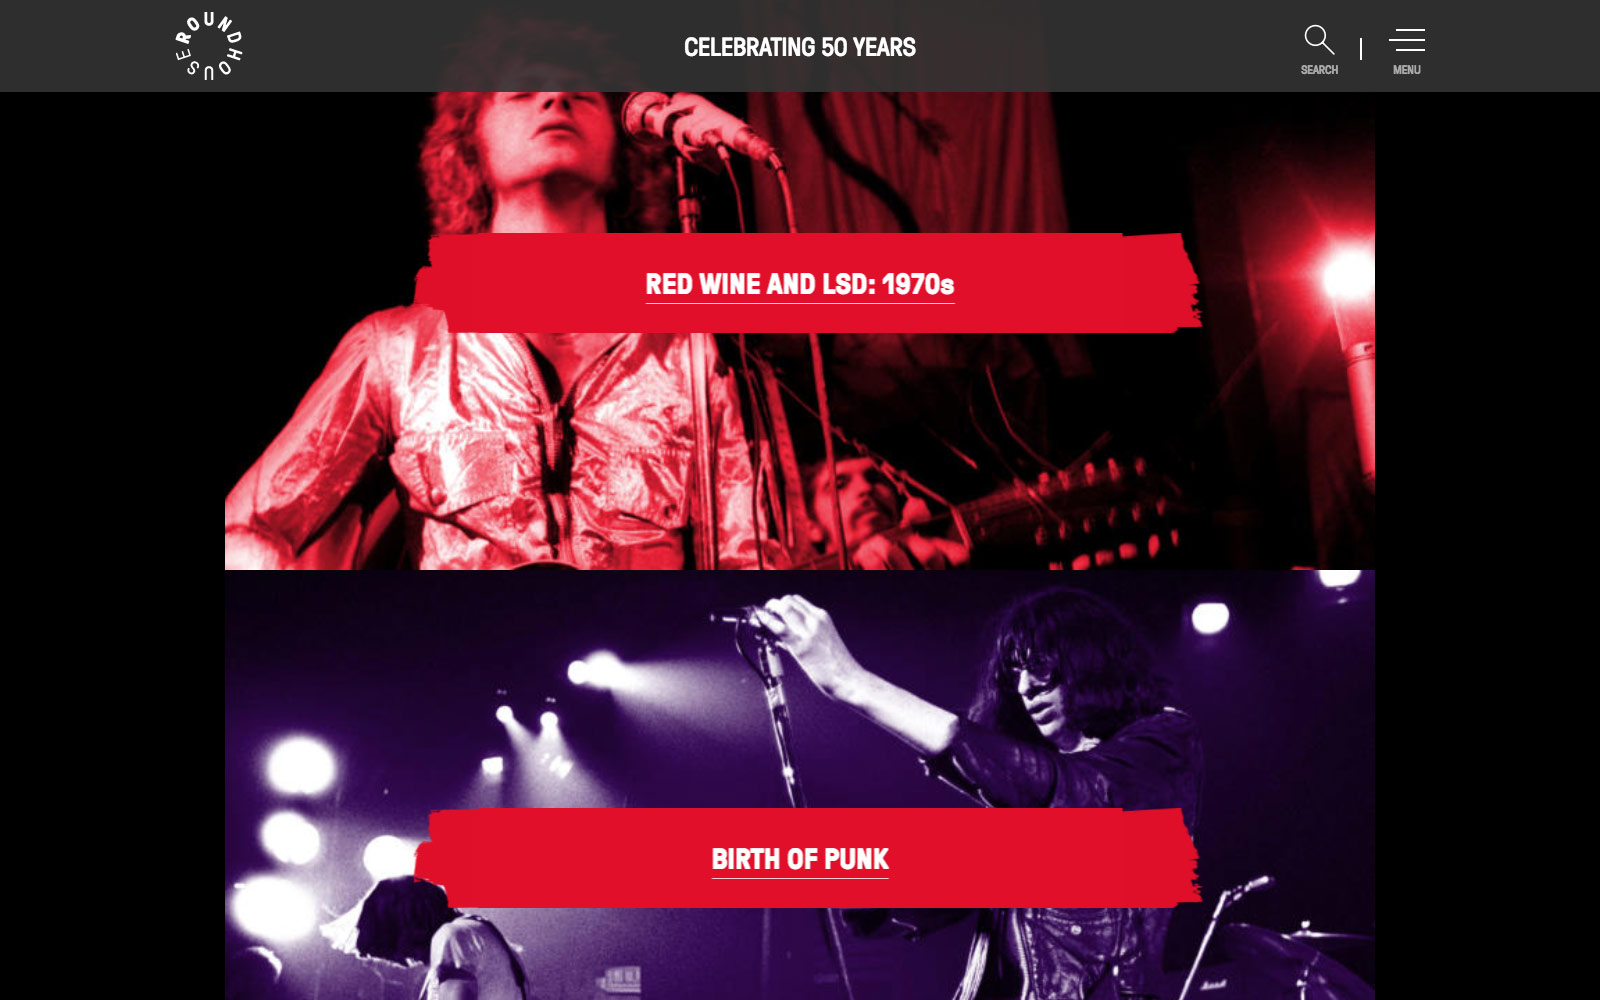 Roundhouse 50 years website homepage